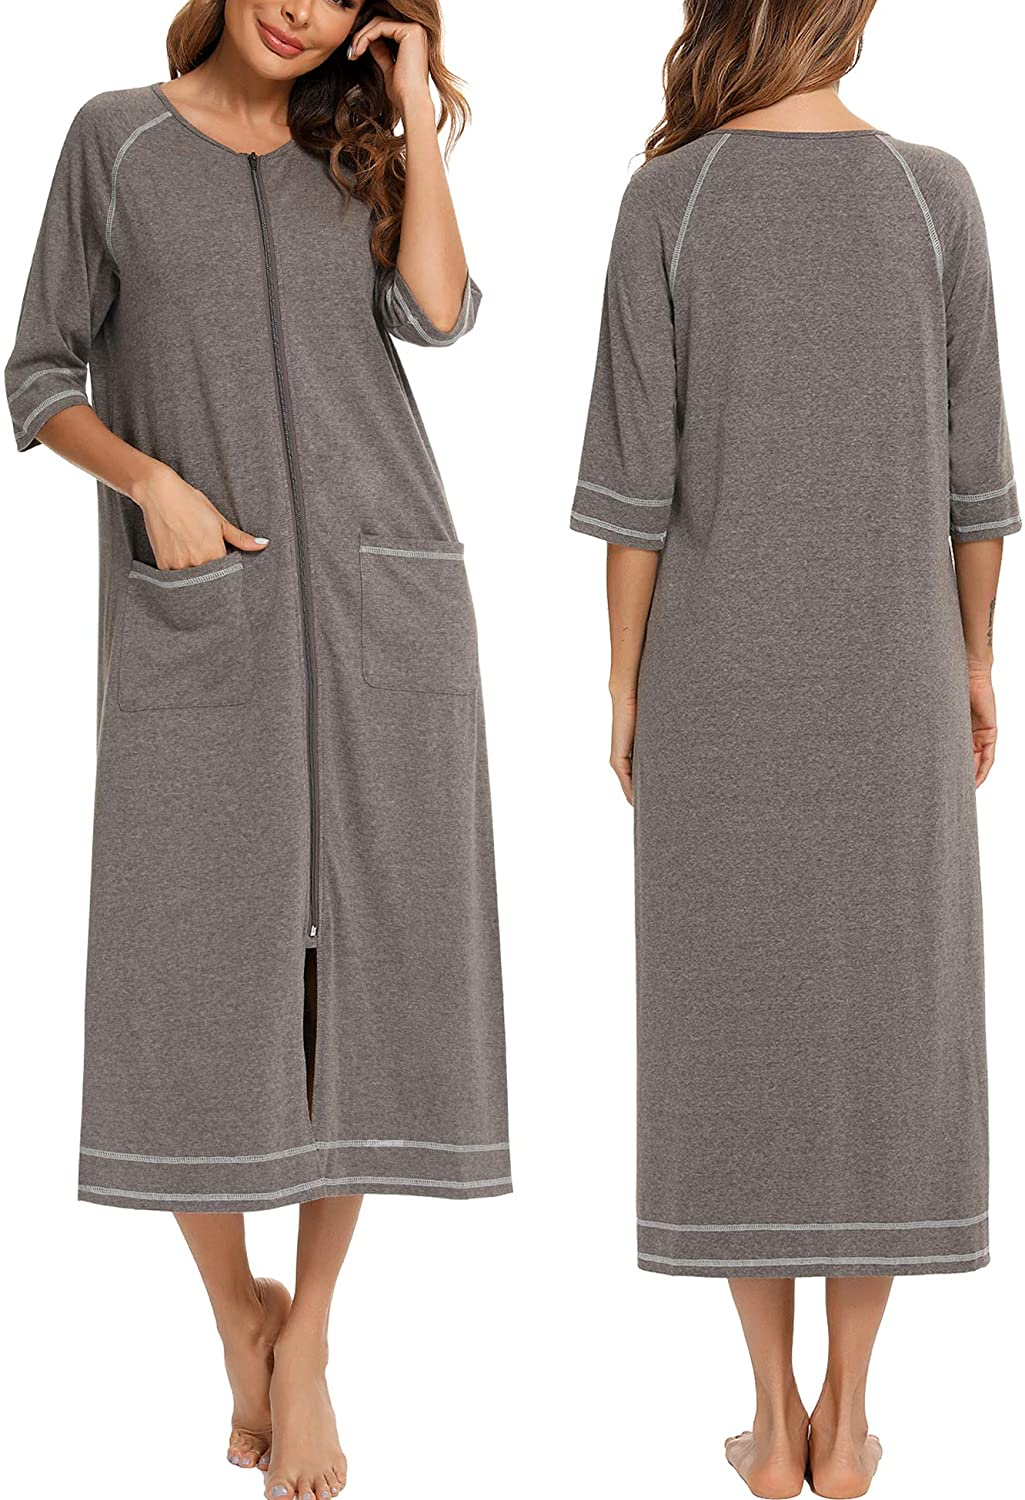 Veseacky Women latest Robe Zipper Front House Sleeve Max 56% OFF 4 3 Nightgown Coat